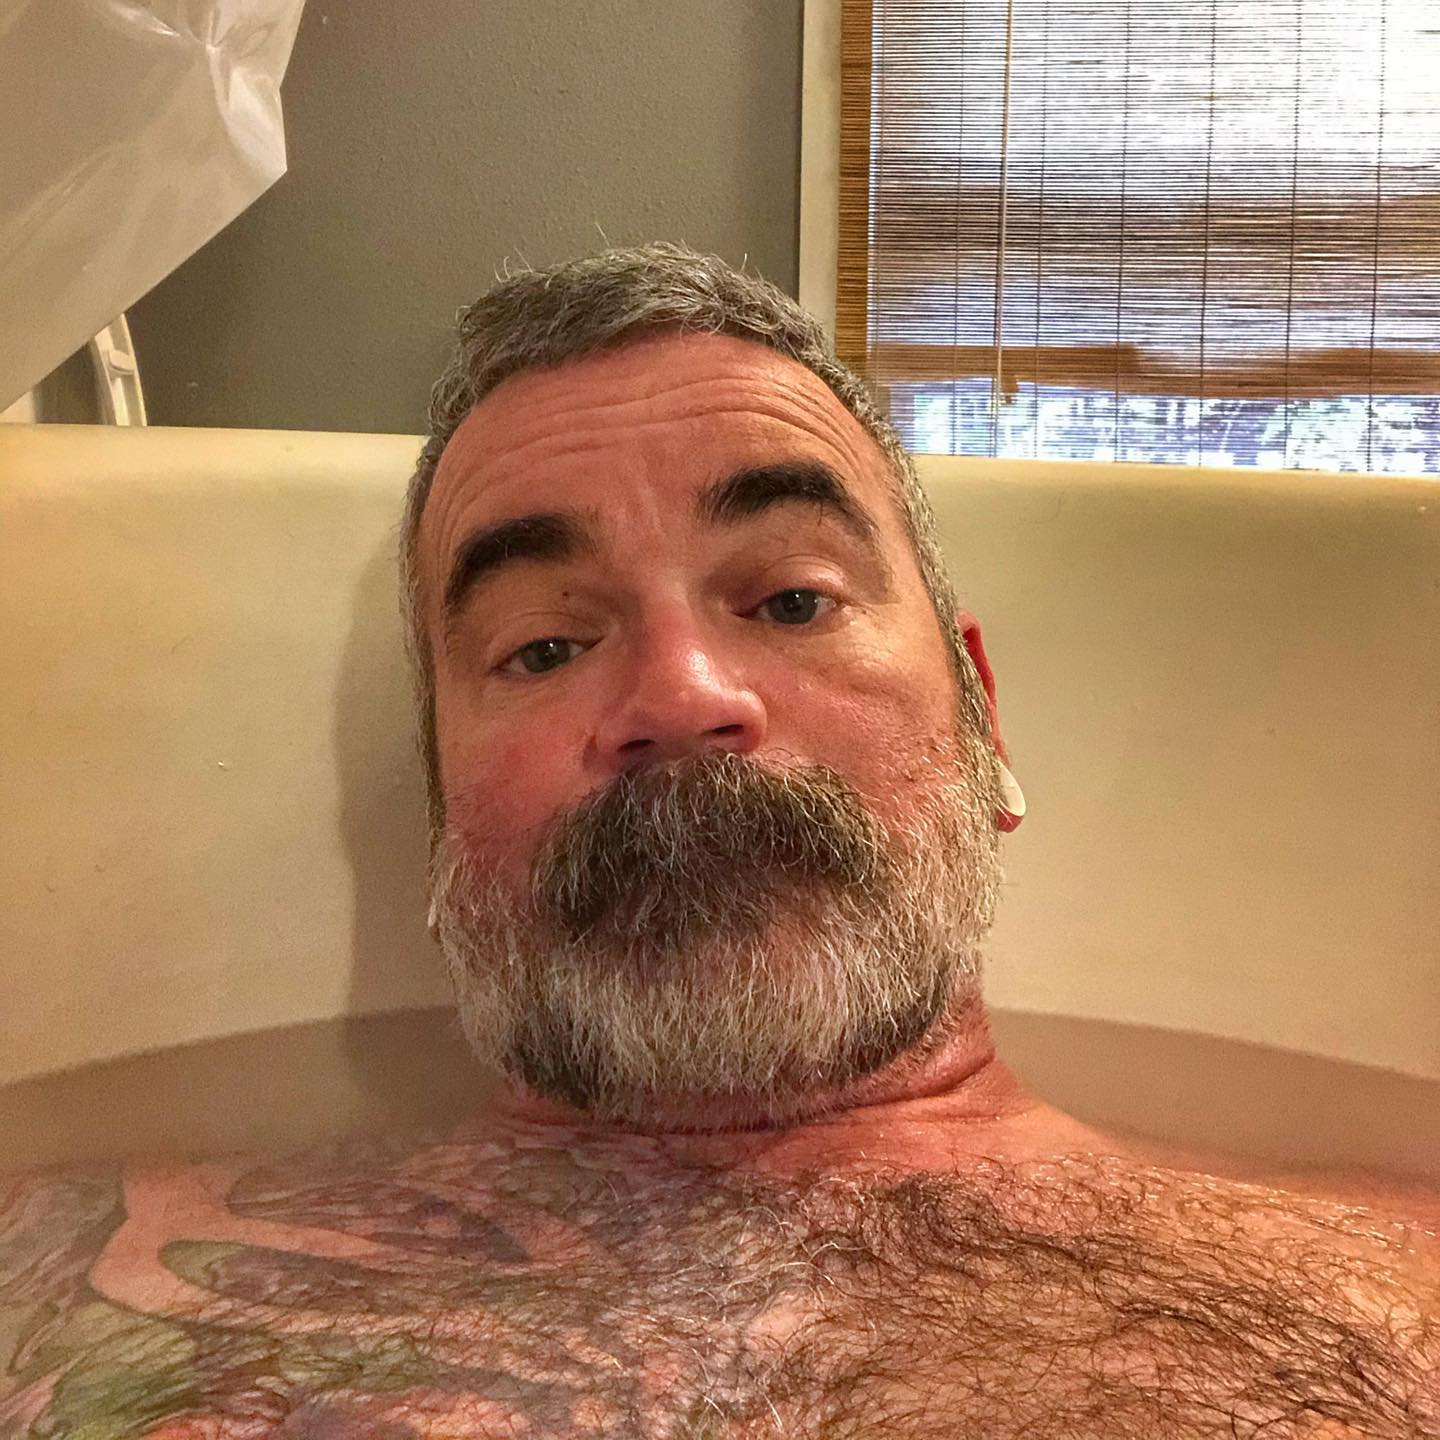 In the 18 years I've lived in this house, this is the first I've ever used the tub to soak. That's what I get for actually using my muscles. #gettingoldersucks